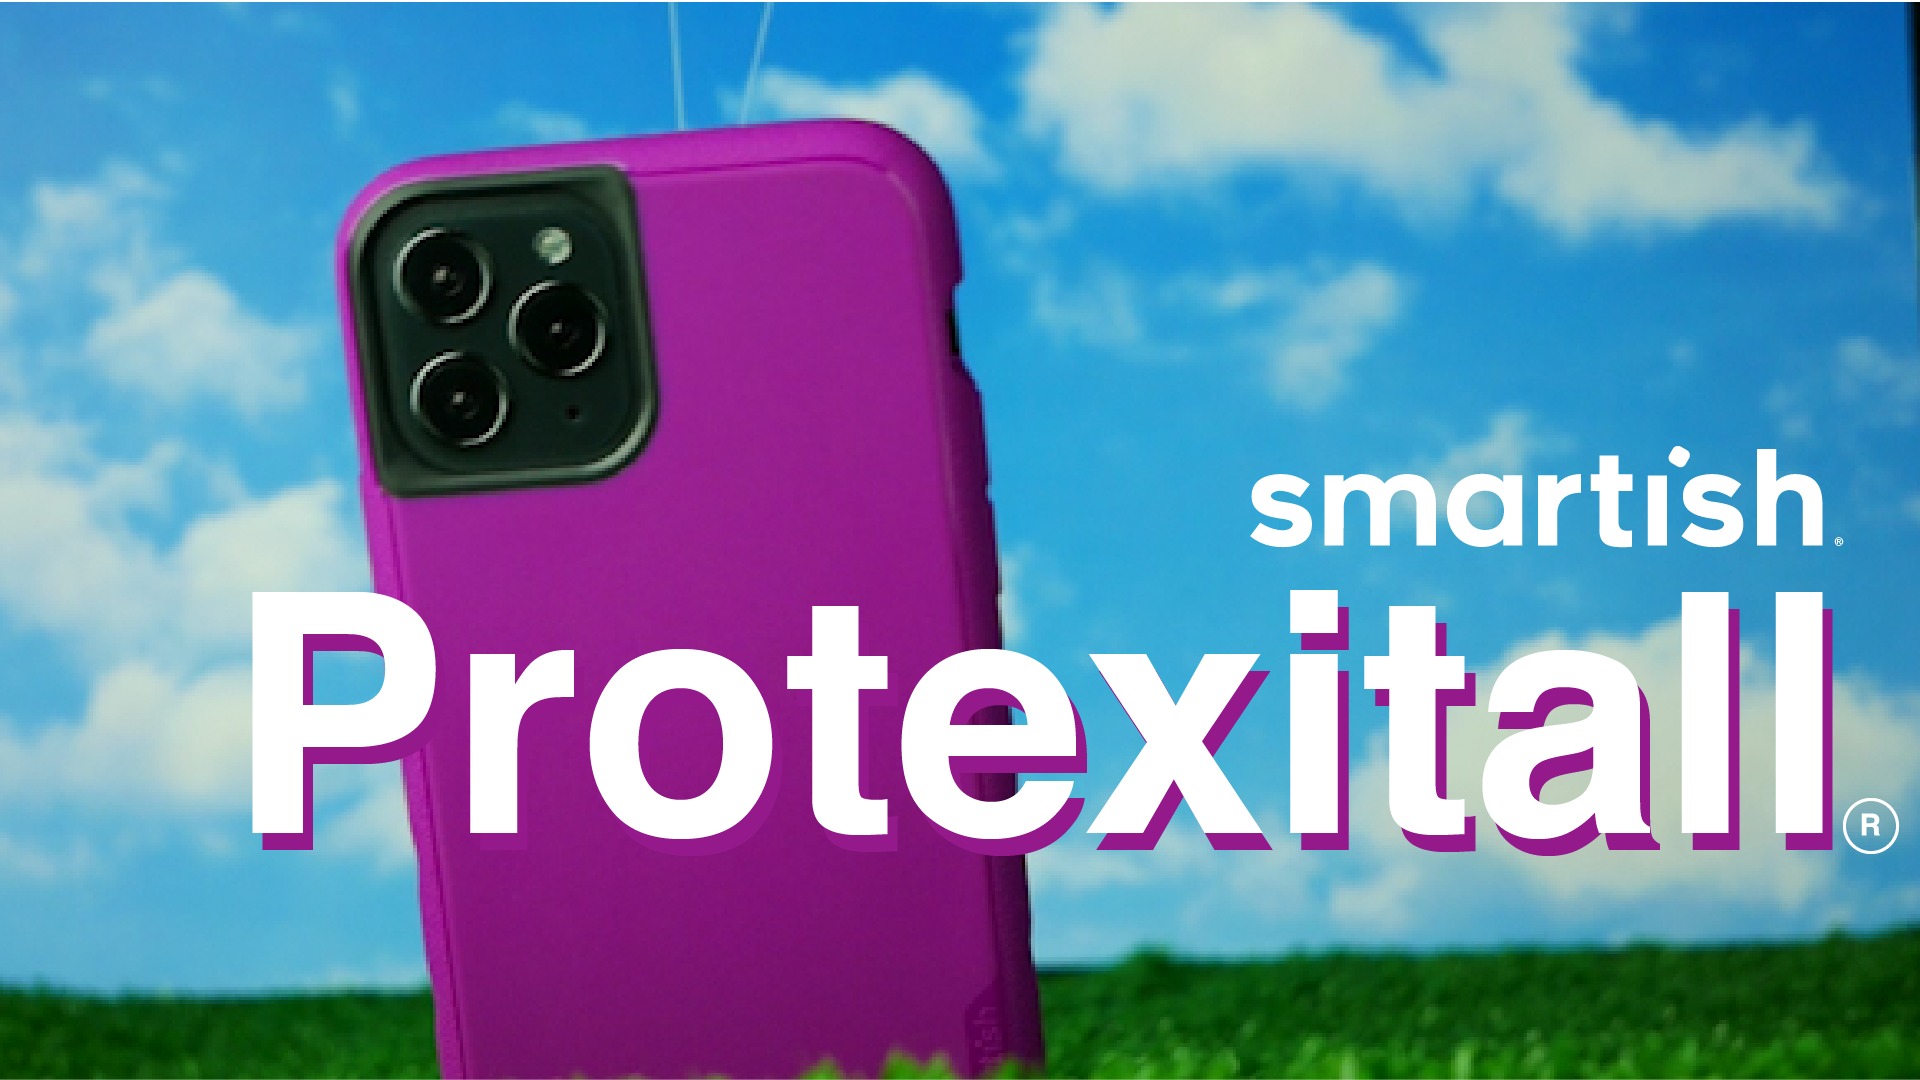 Protexitall (with Smartish)